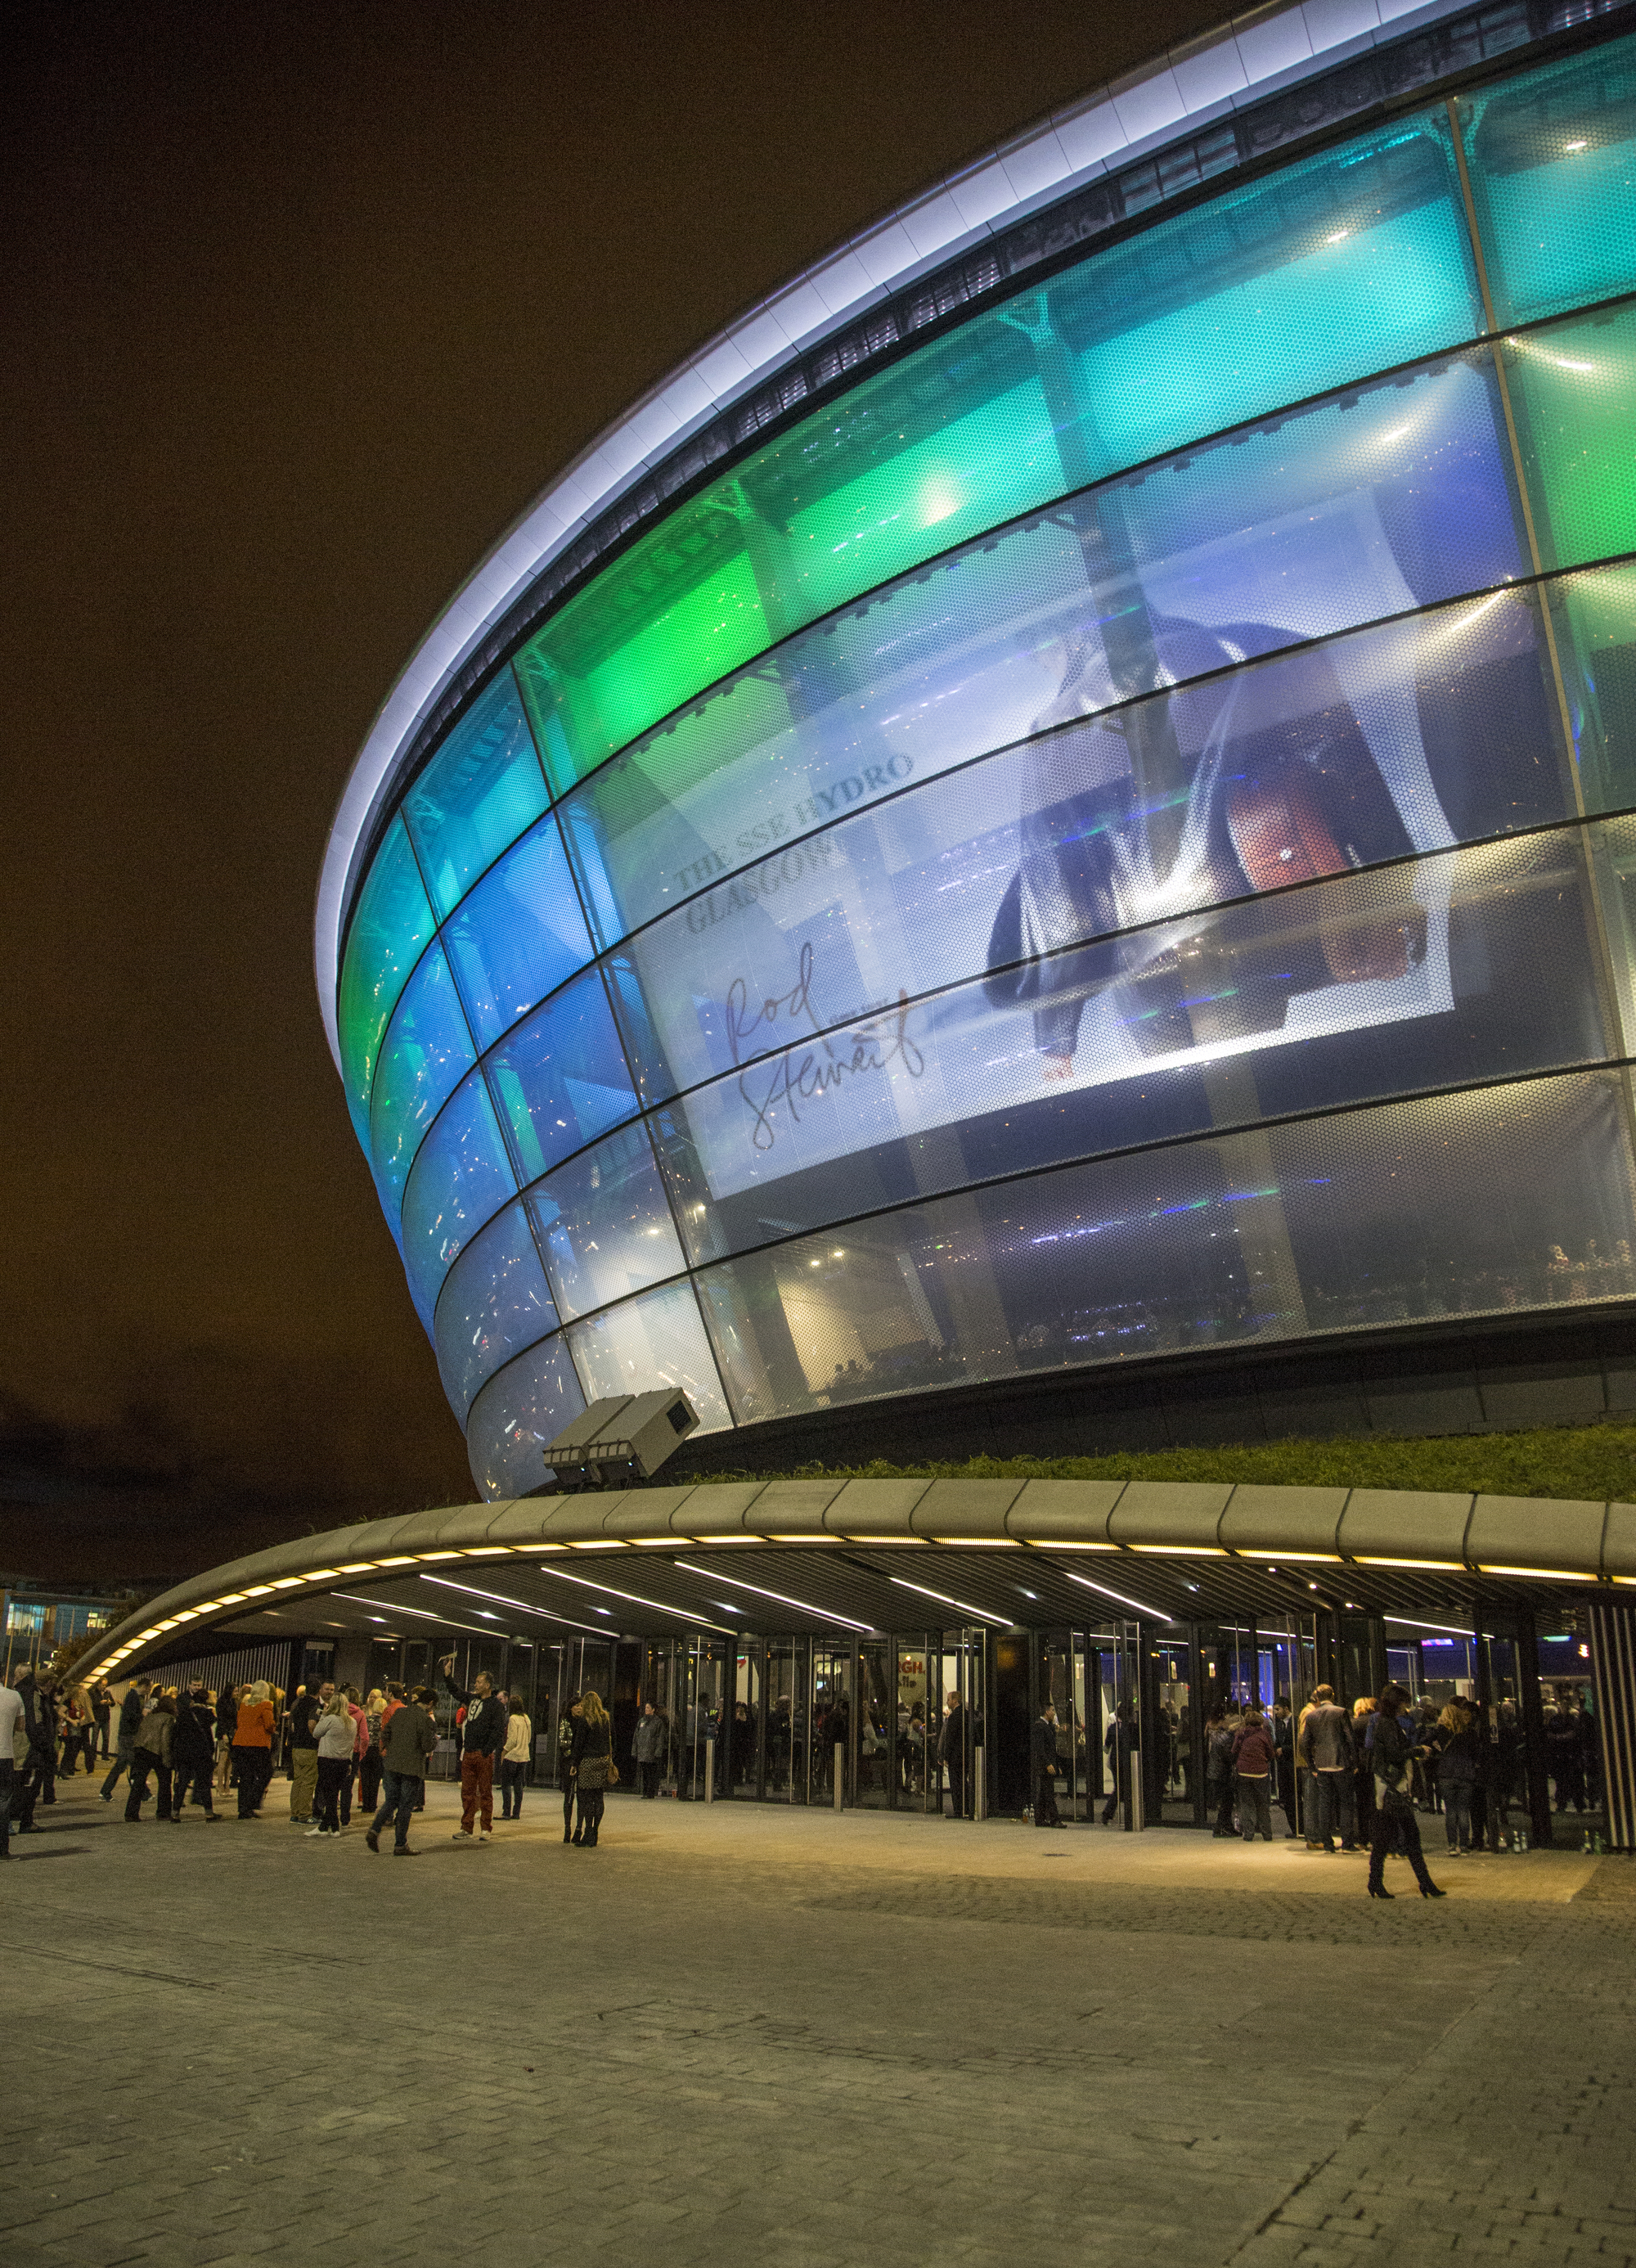 http://ad009cdnb.archdaily.net/wp-content/uploads/2014/04/53504b4fc07a808d67000004_foster-partners-sse-hydro-arena-features-translucent-skin-innovative-seating-system_3r1a6808.jpg